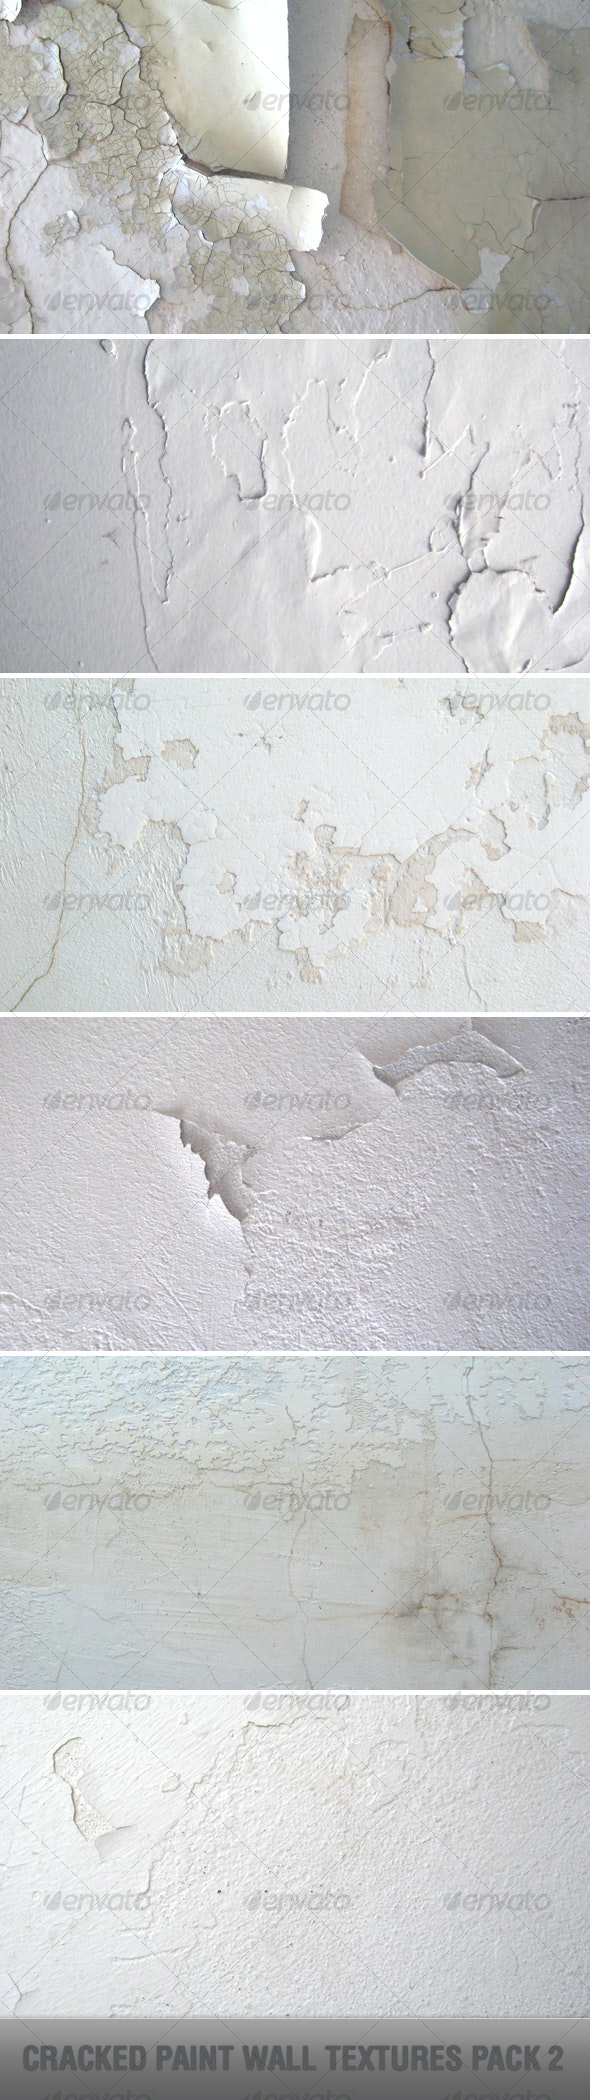 Cracked Paint Wall Textures Pack 2 - Industrial / Grunge Textures